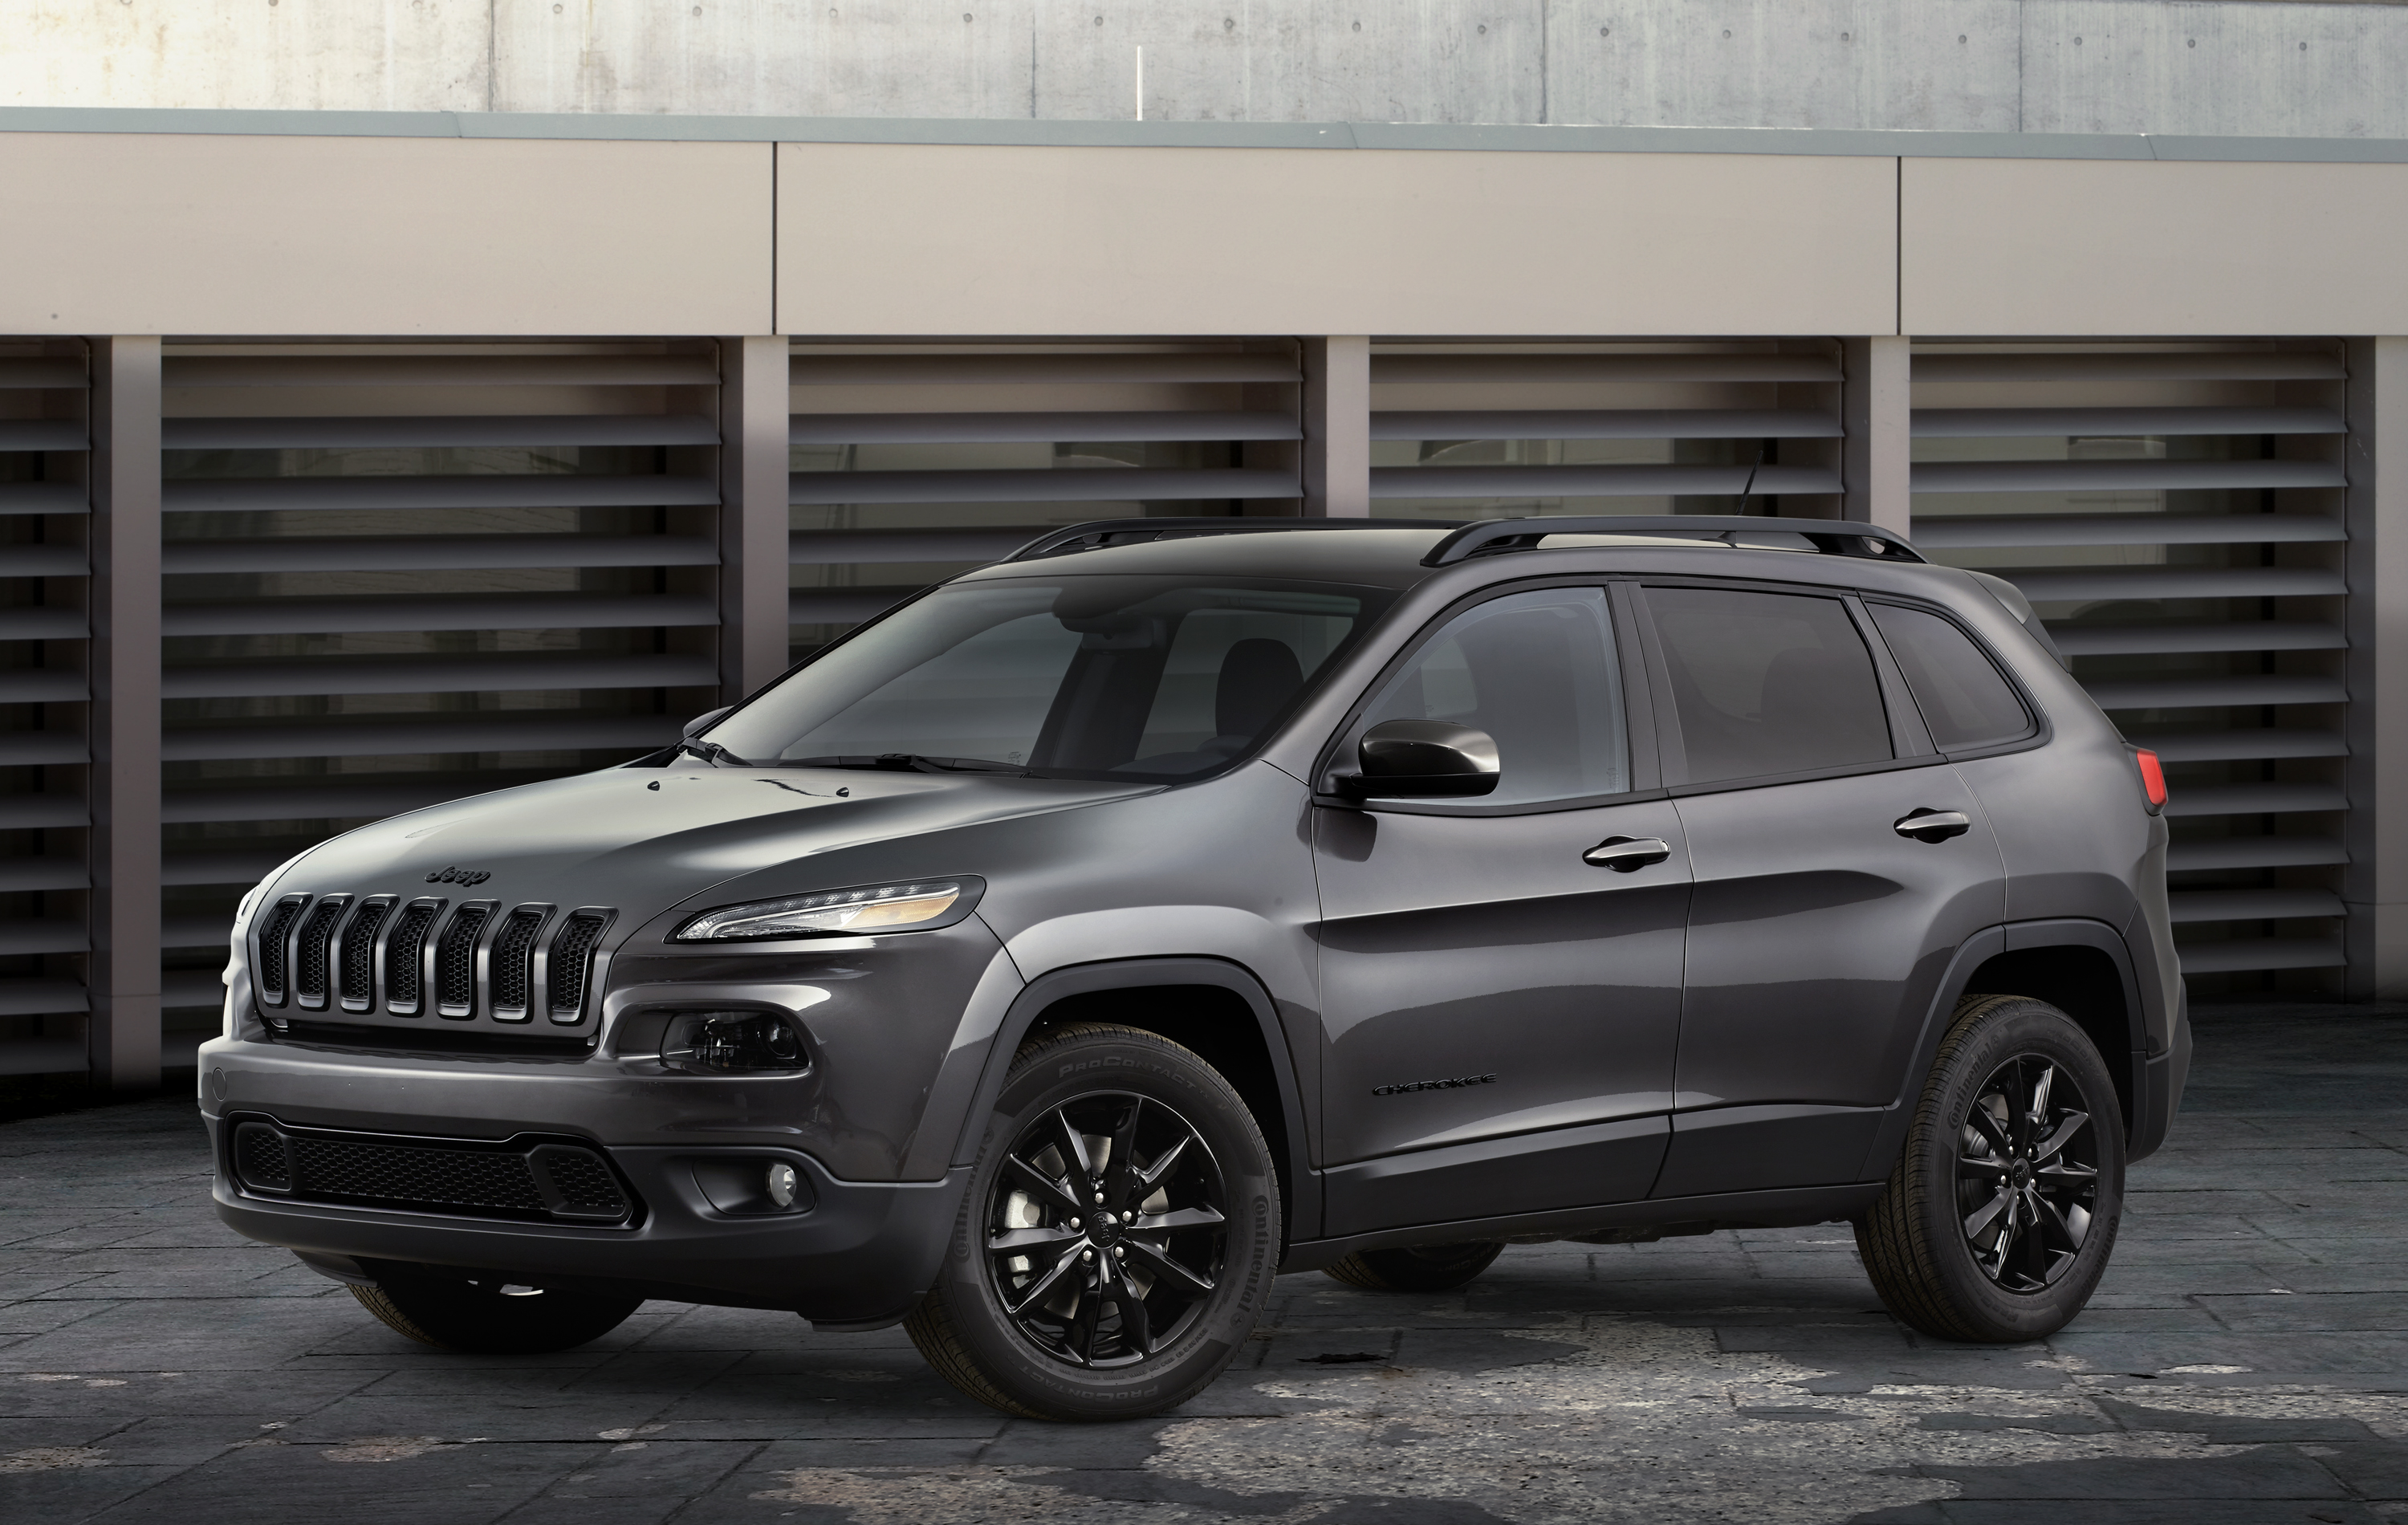 even upgrade perforated leather and black embroidered concepts inside inserts options the grand by mopar logos warrior jeep trailhawk draw seats trail dakar ecodiesel moab more with maize cherokee attention adventurer adding huge katzkin